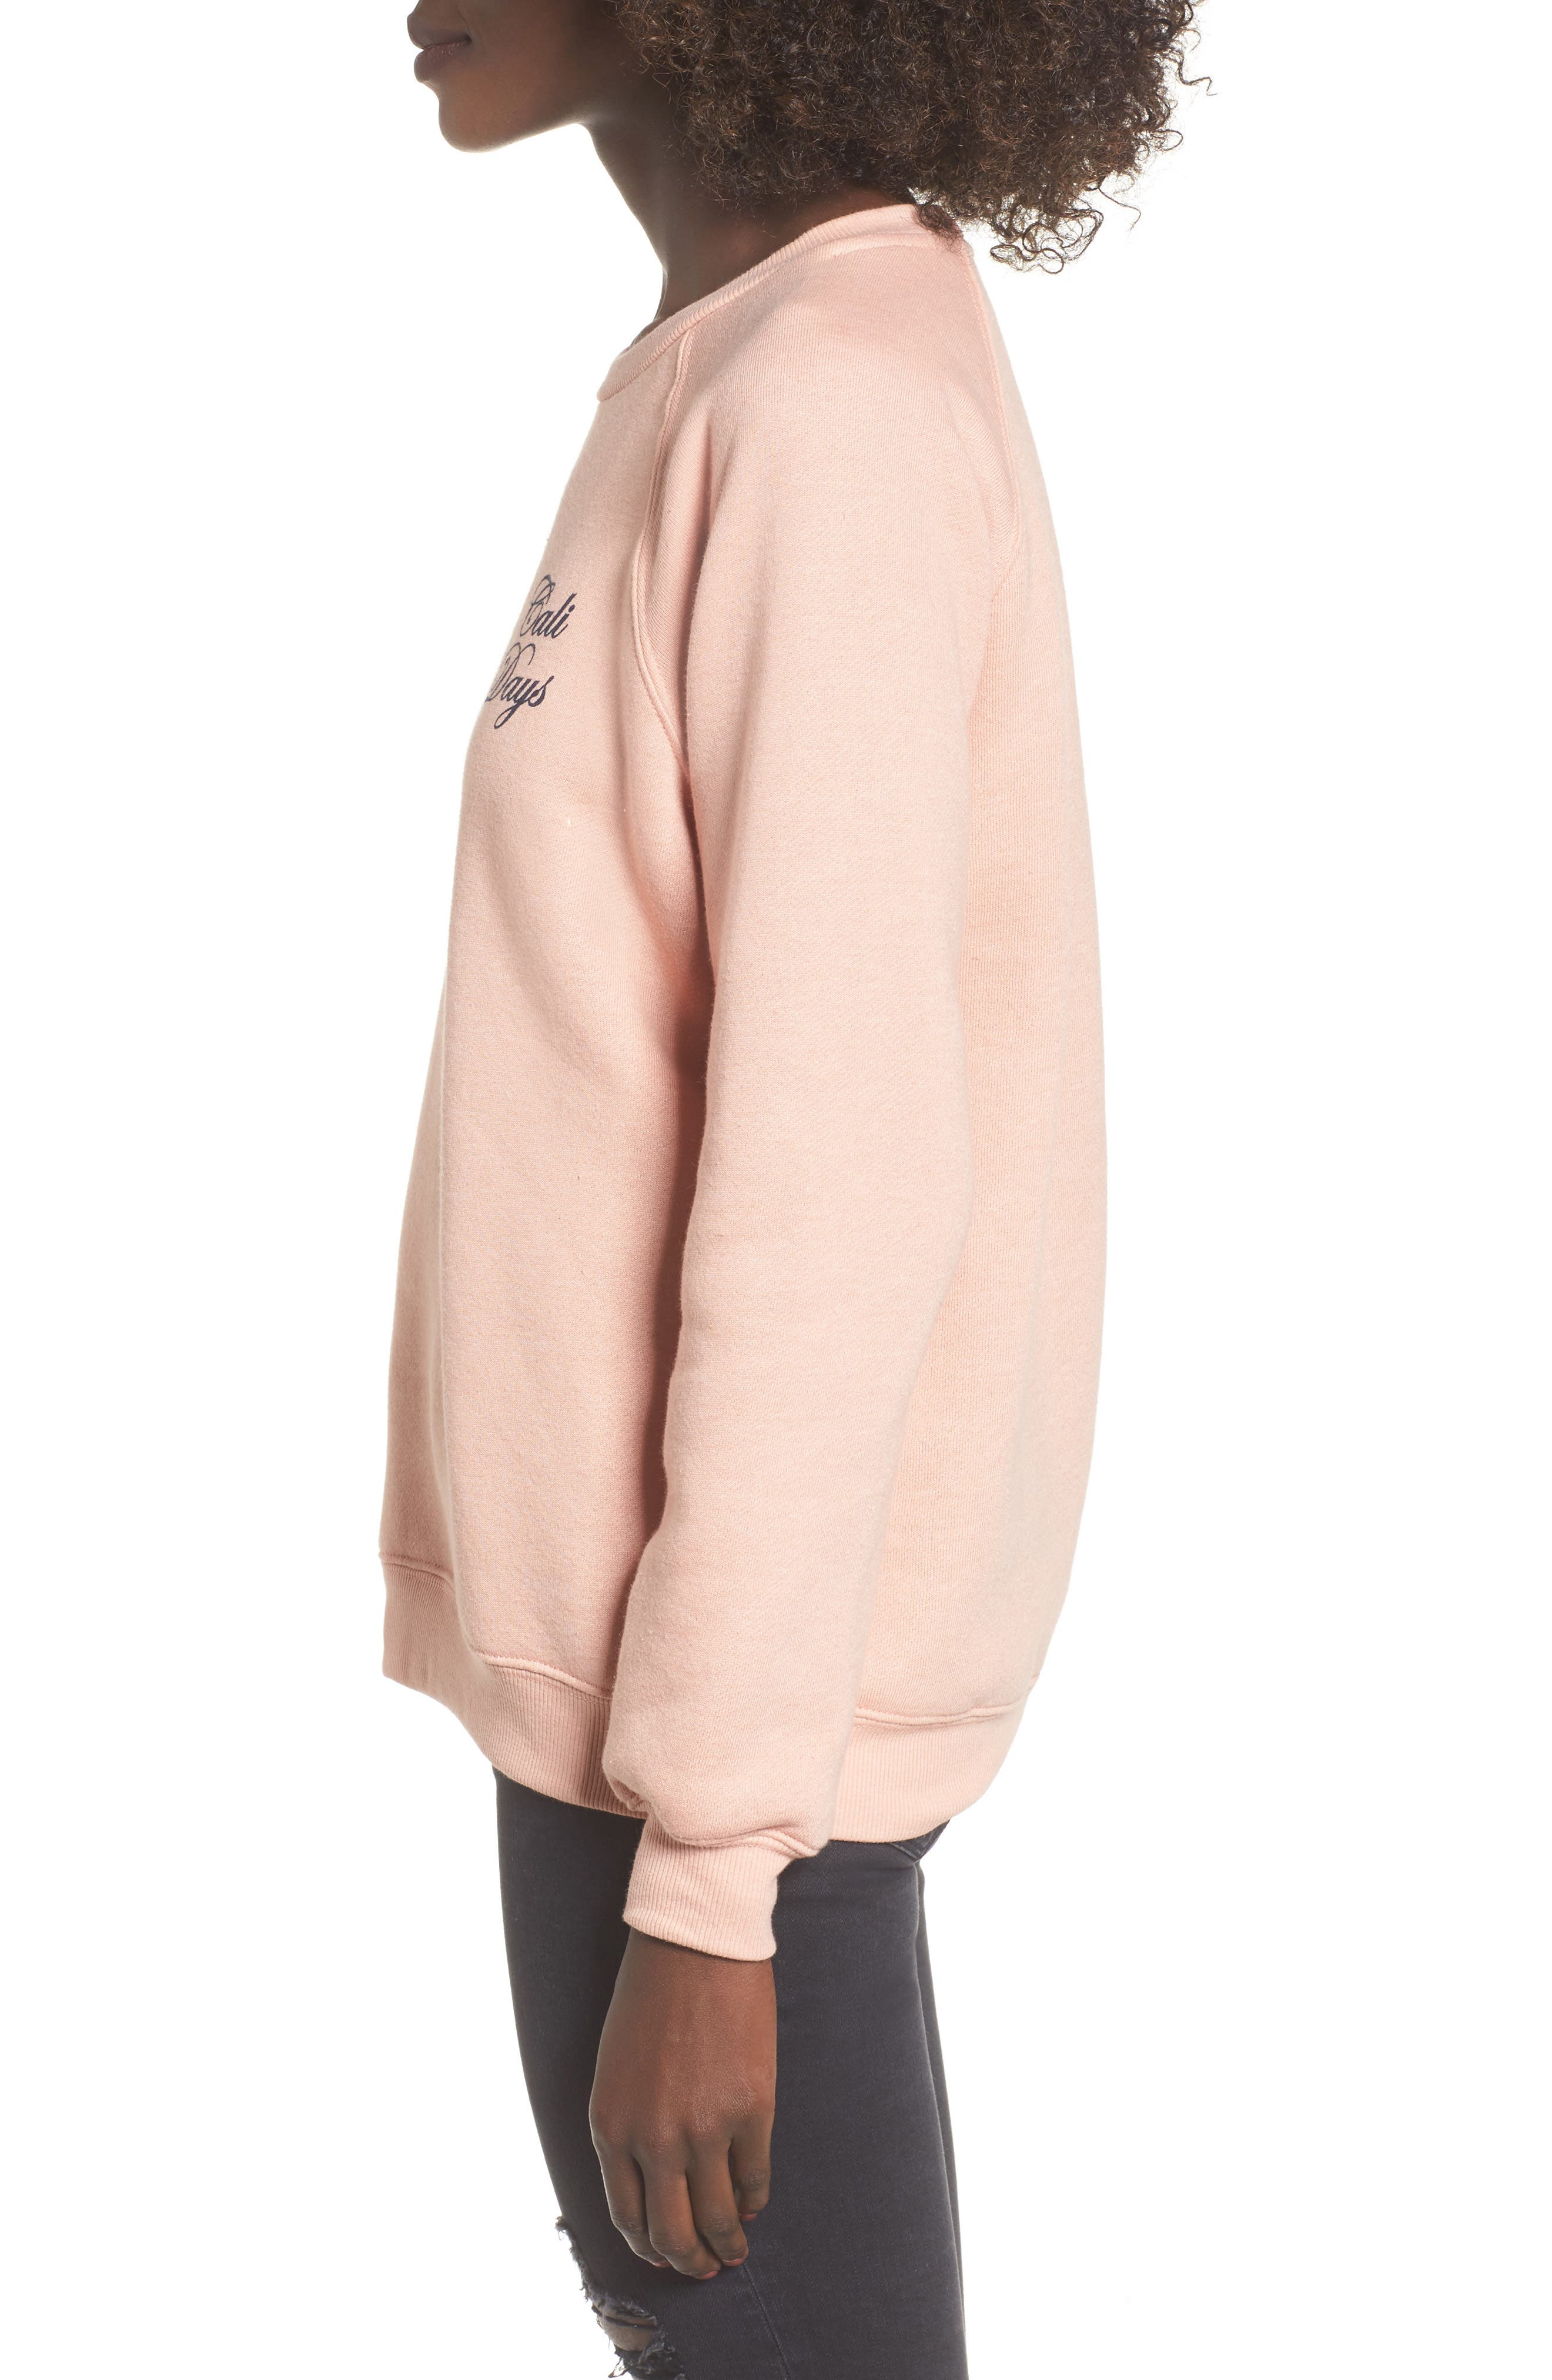 Cali Days Sweatshirt,                             Alternate thumbnail 3, color,                             Pearl Pink